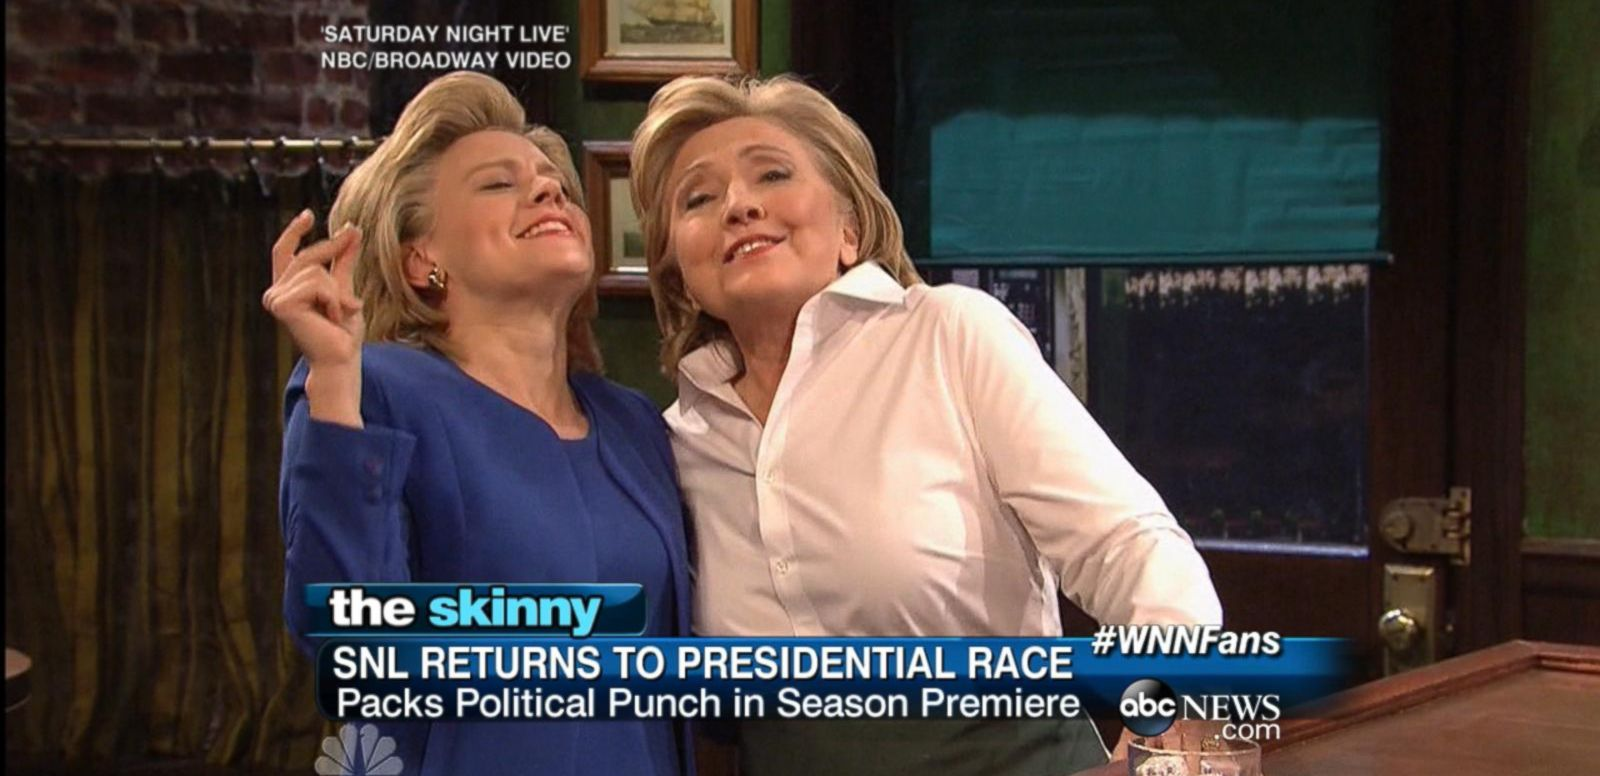 VIDEO: Democratic frontrunner Hillary Clinton makes a surprise appearance on SNL, playing a bar tender alongside actress and comedian Kate McKinnon.